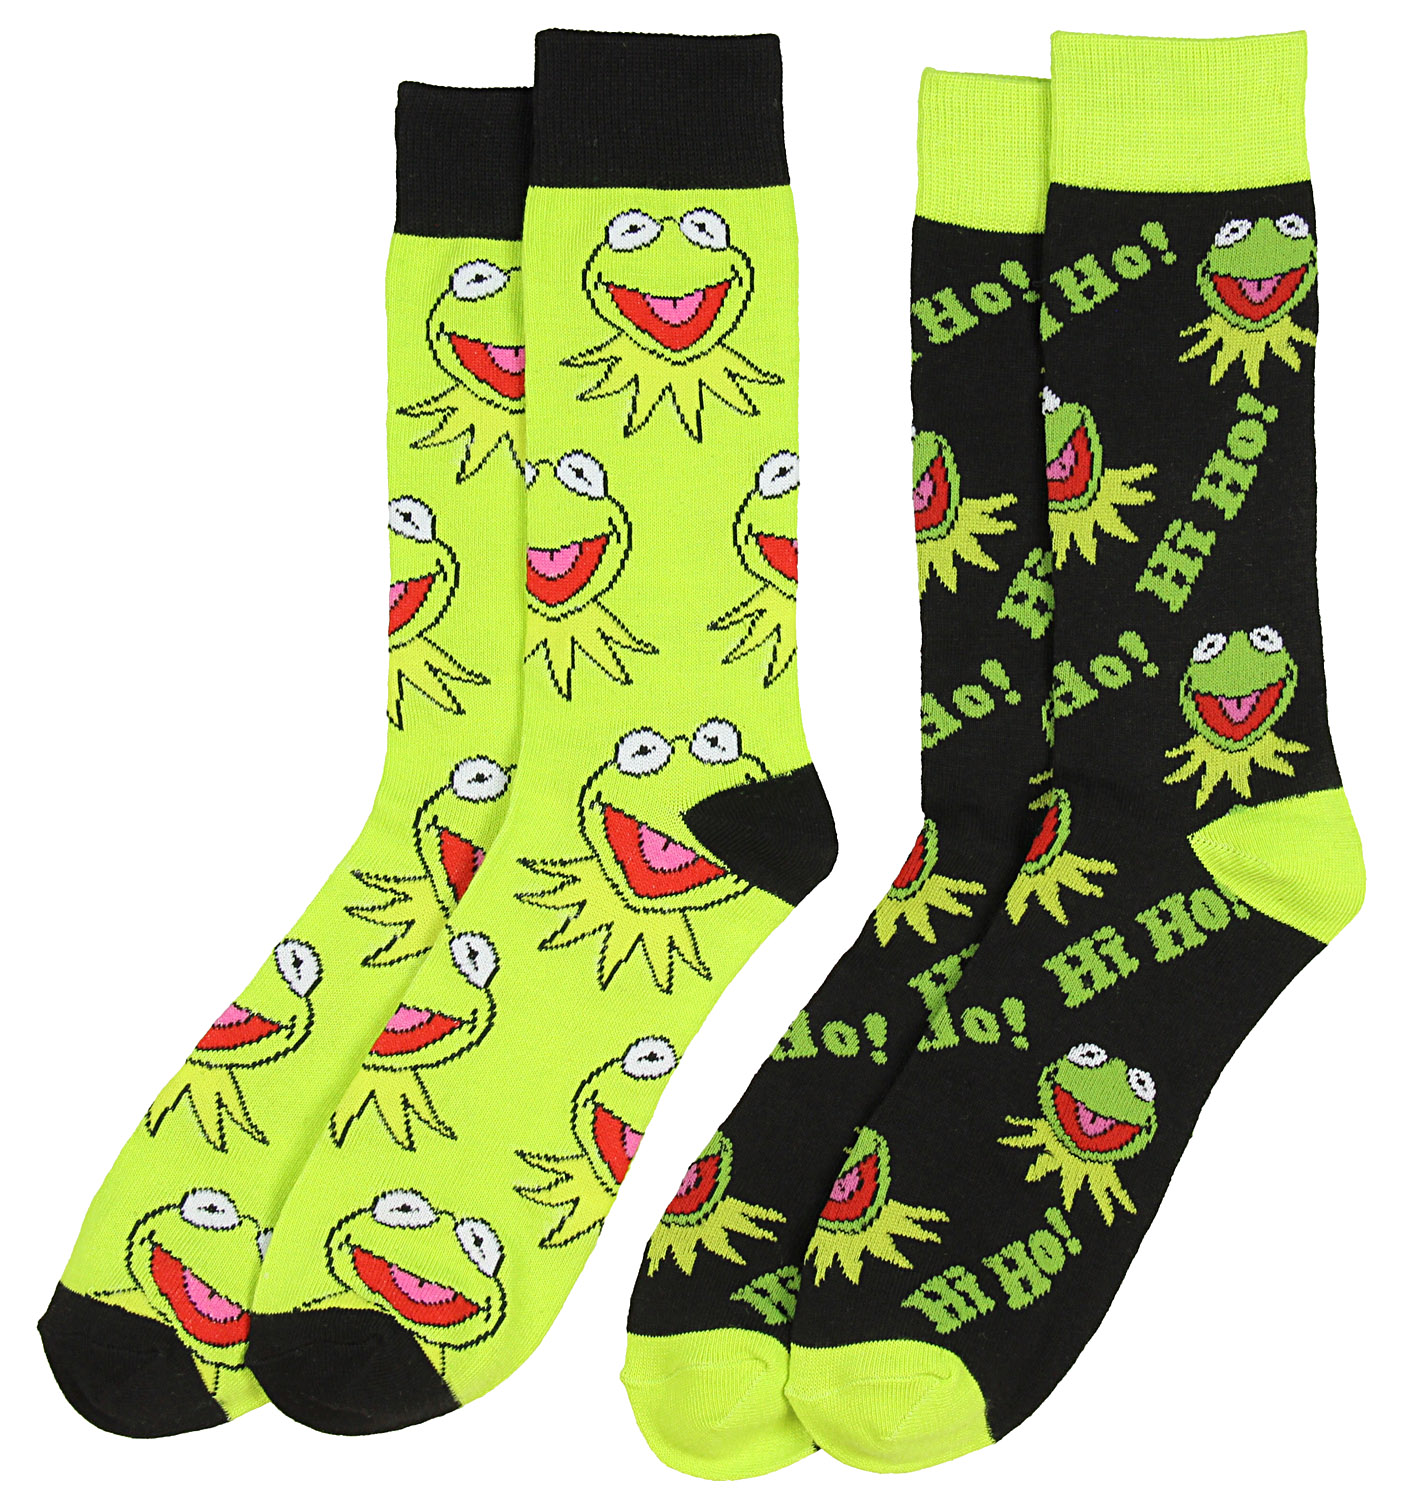 d0c0713a3a1 These sock are a must in your wardrobe if you are fan of the green frog. 2  set of crew length socks.